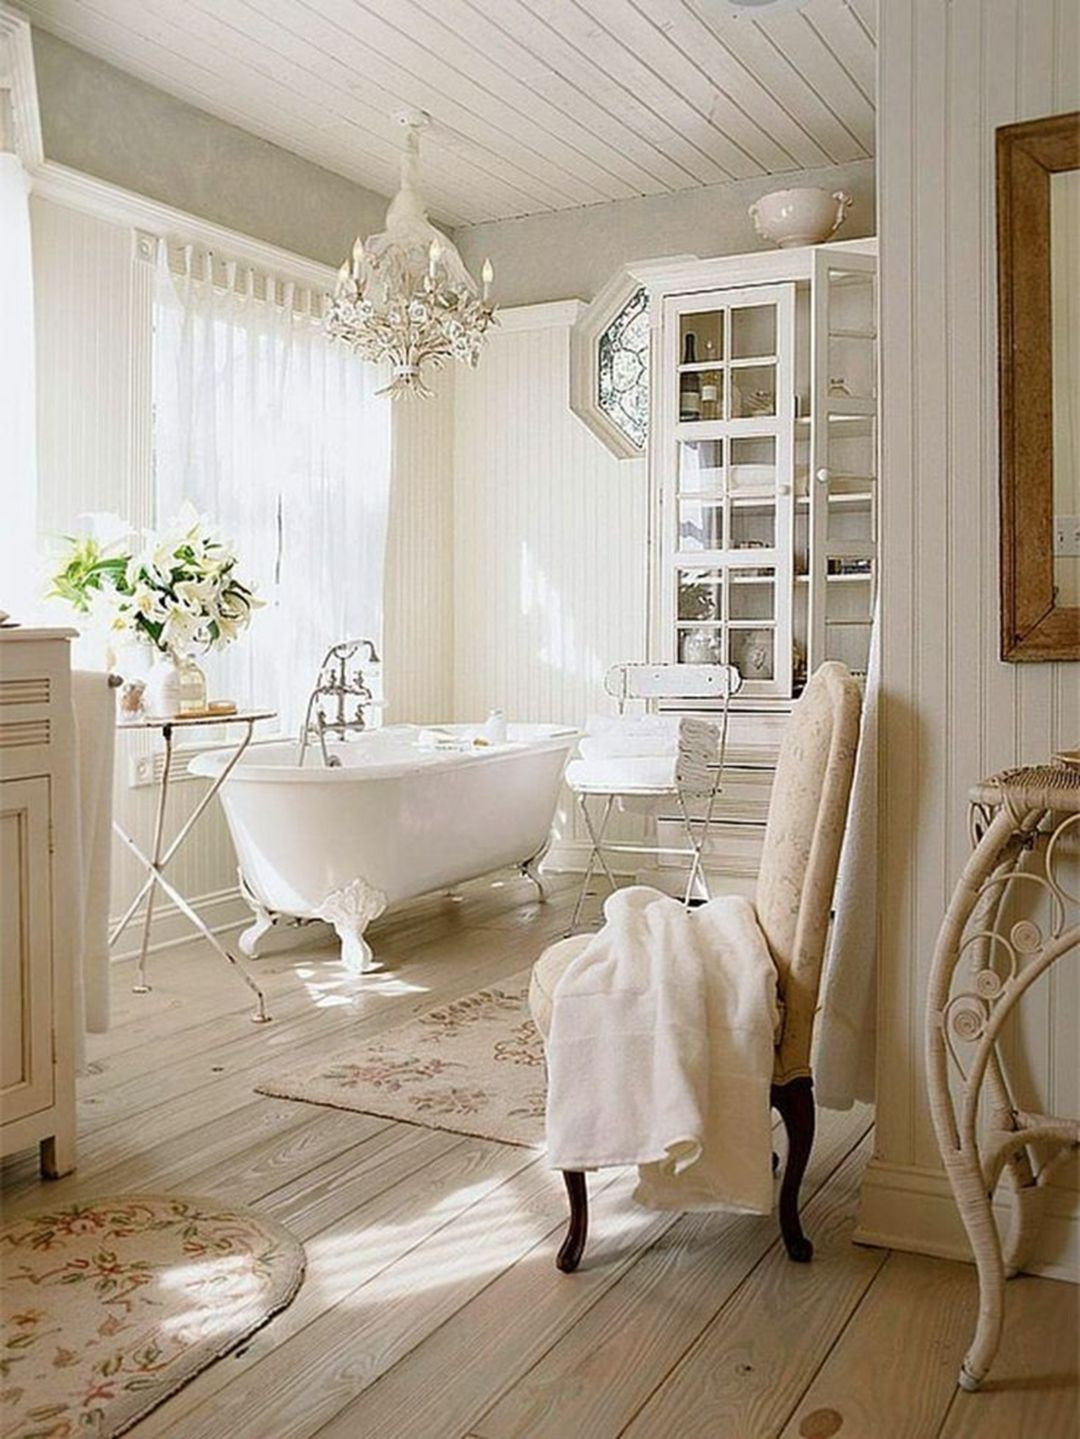 French Country Bathroom Decor Lovely 10 Fantastic French Country Bathroom Design Ideas for Your